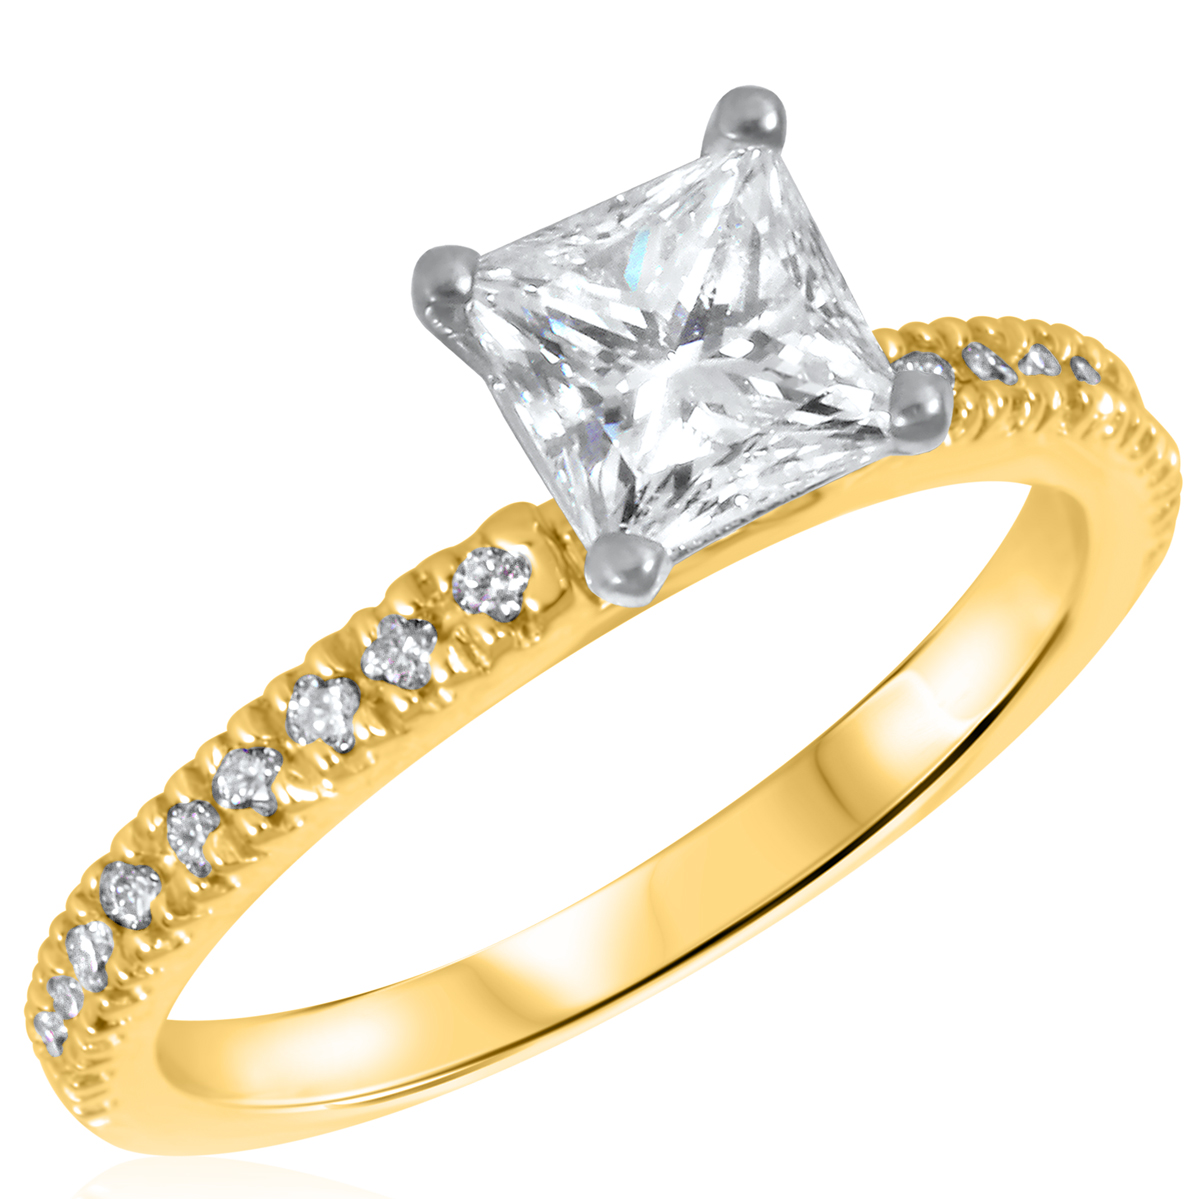 1 1/5 CT. T.W. Diamond Ladies Engagement Ring 14K Yellow Gold- Size 8